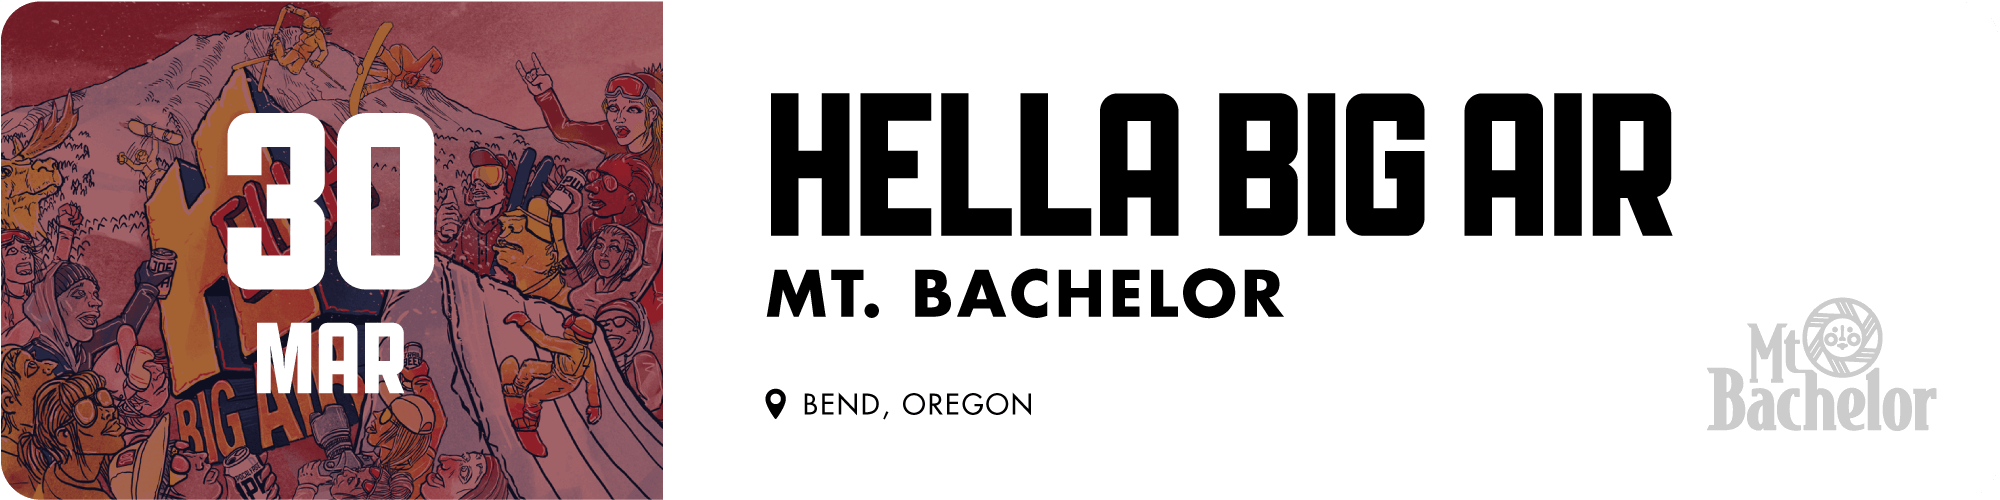 Hella Big Air - 10 Barrel Brewing Company, Drink Beer Outside, Bend, OR since 2006